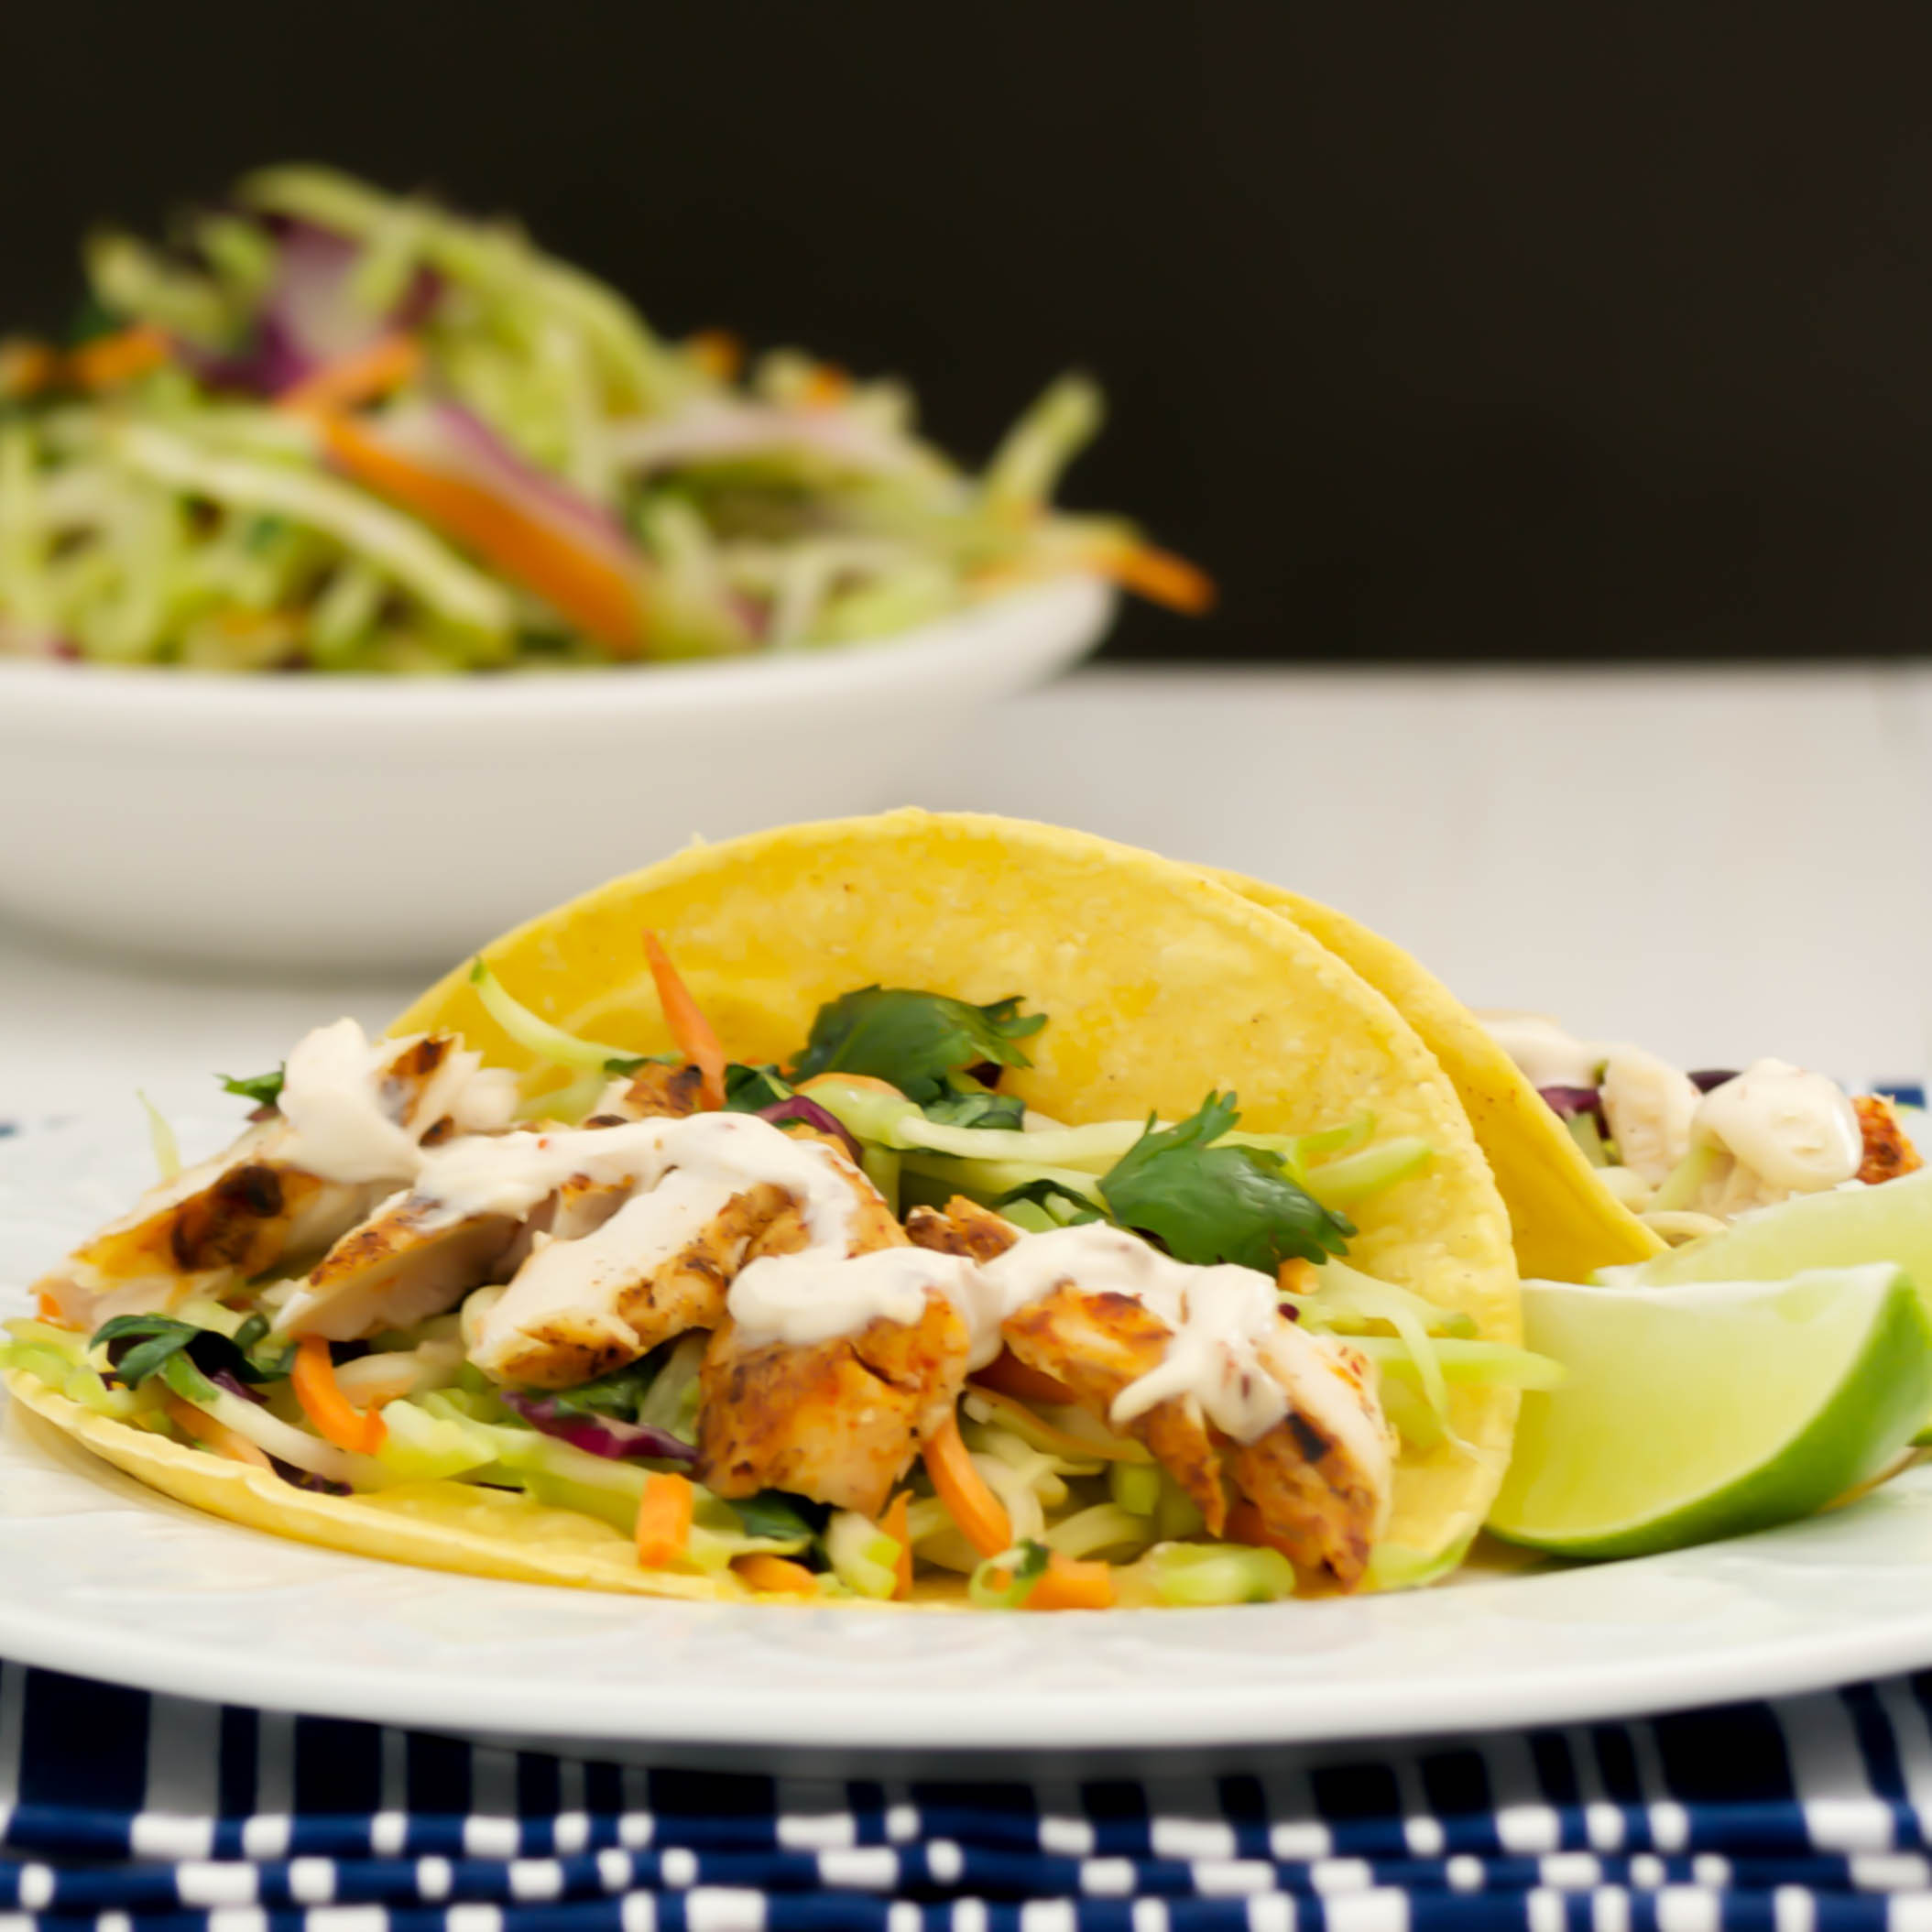 Fish Tacos California Pizza Kitchen Calories